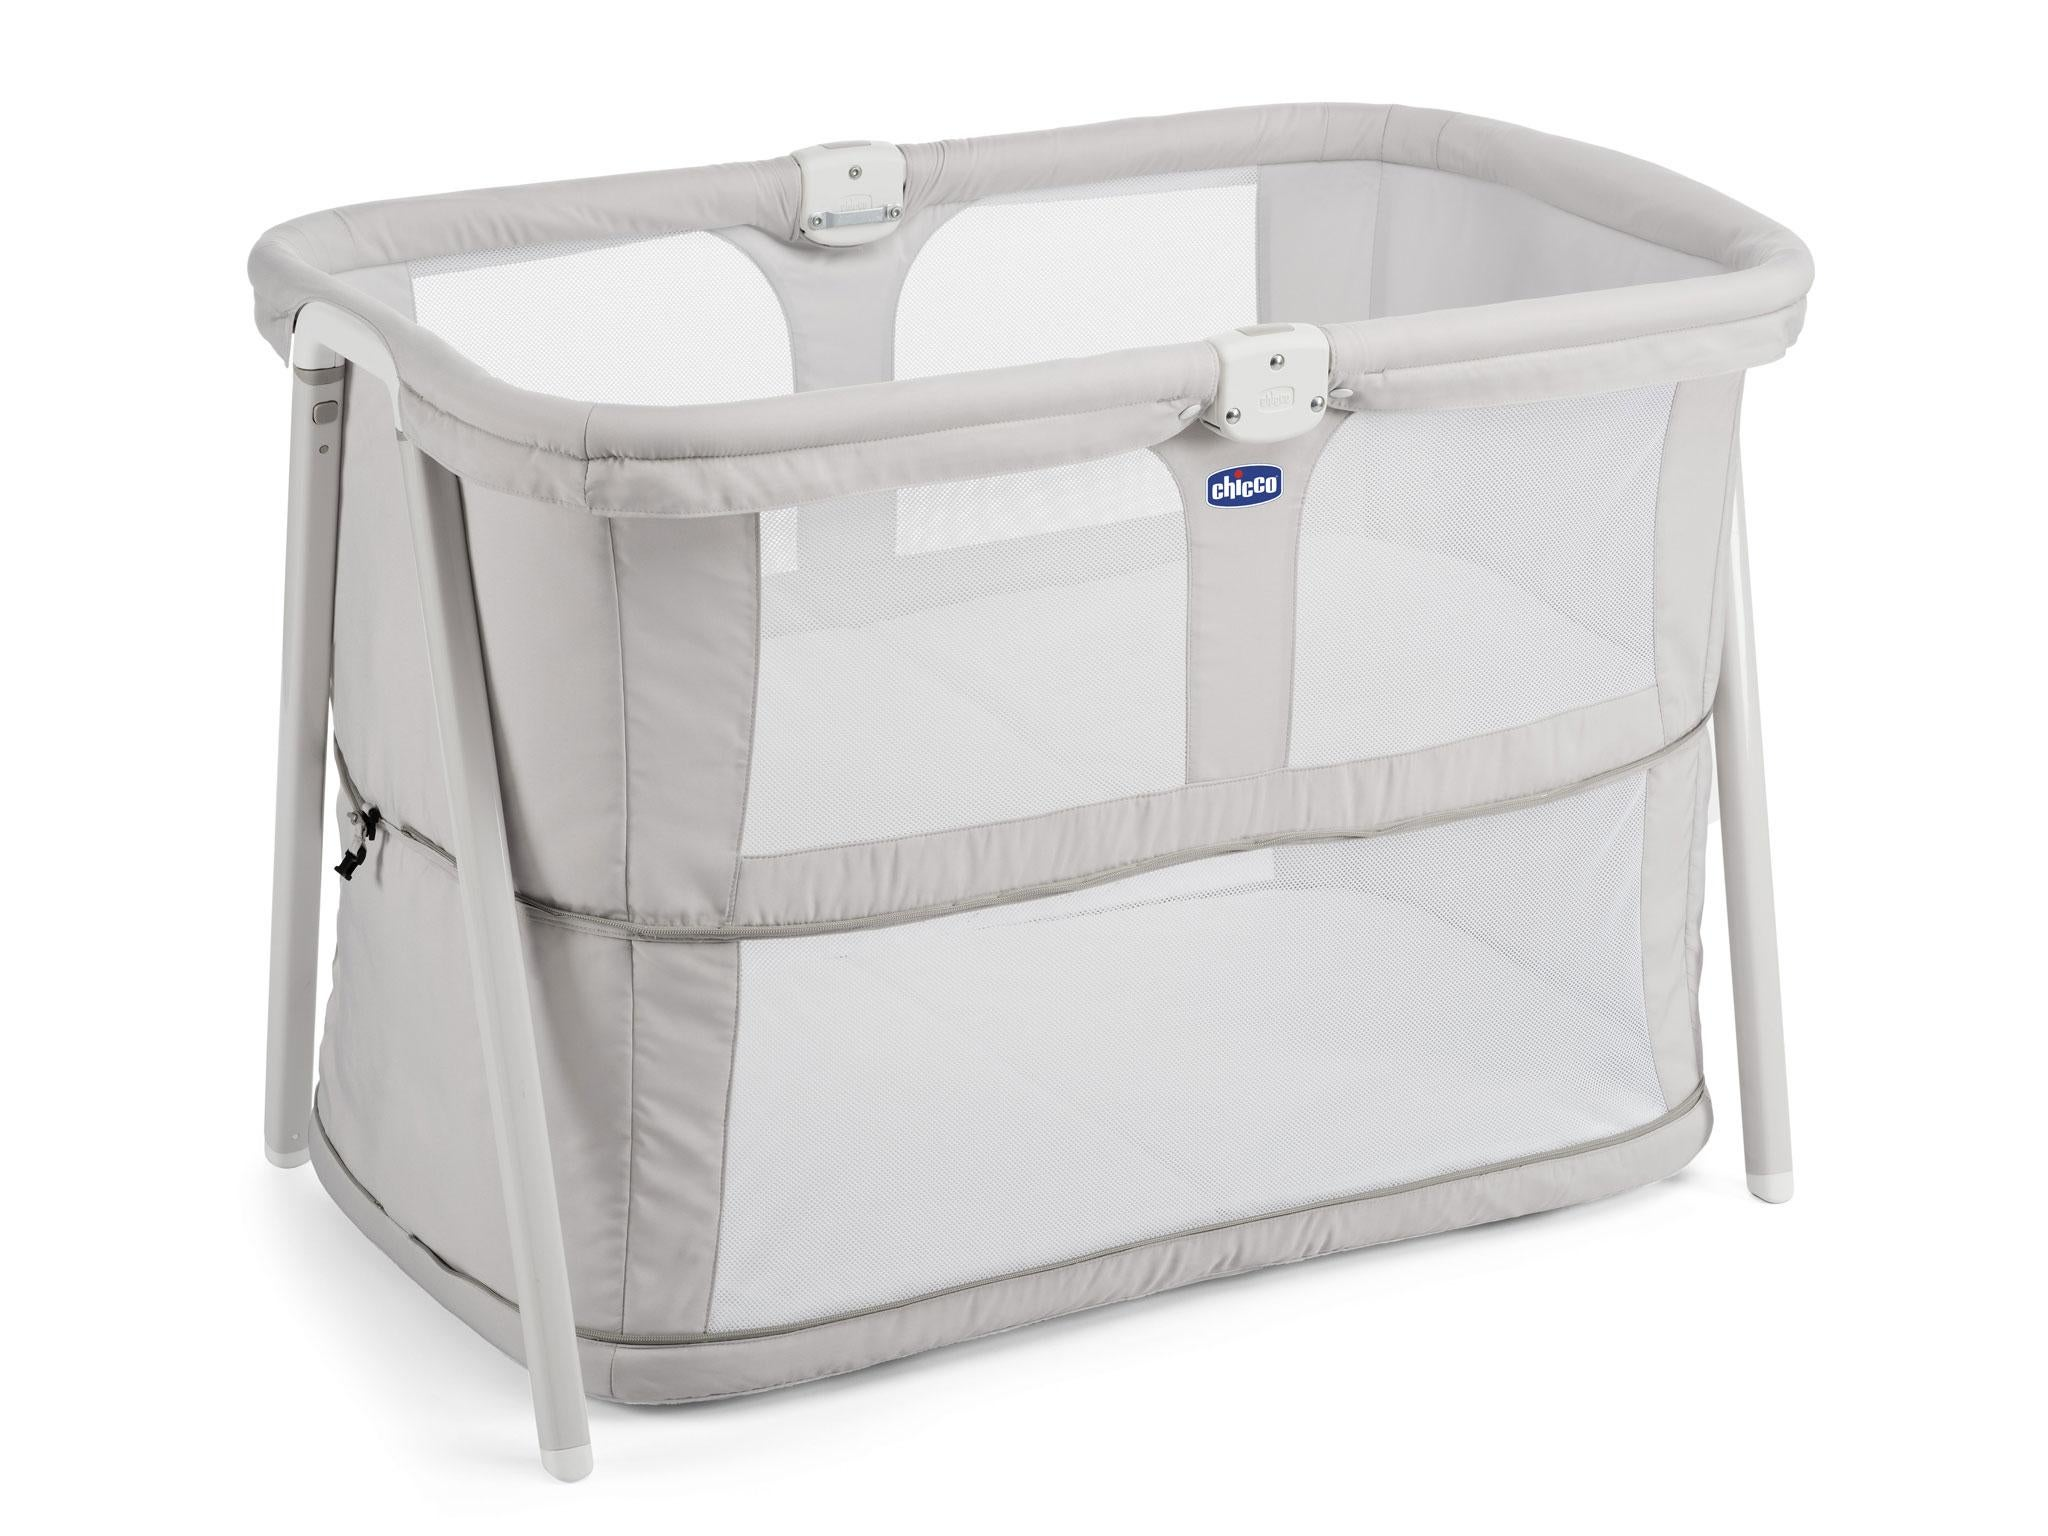 Weve reviewed the original version of this compact cot in the past and felt it was a great option for parents of newborns, for whom normal-sized travel ...